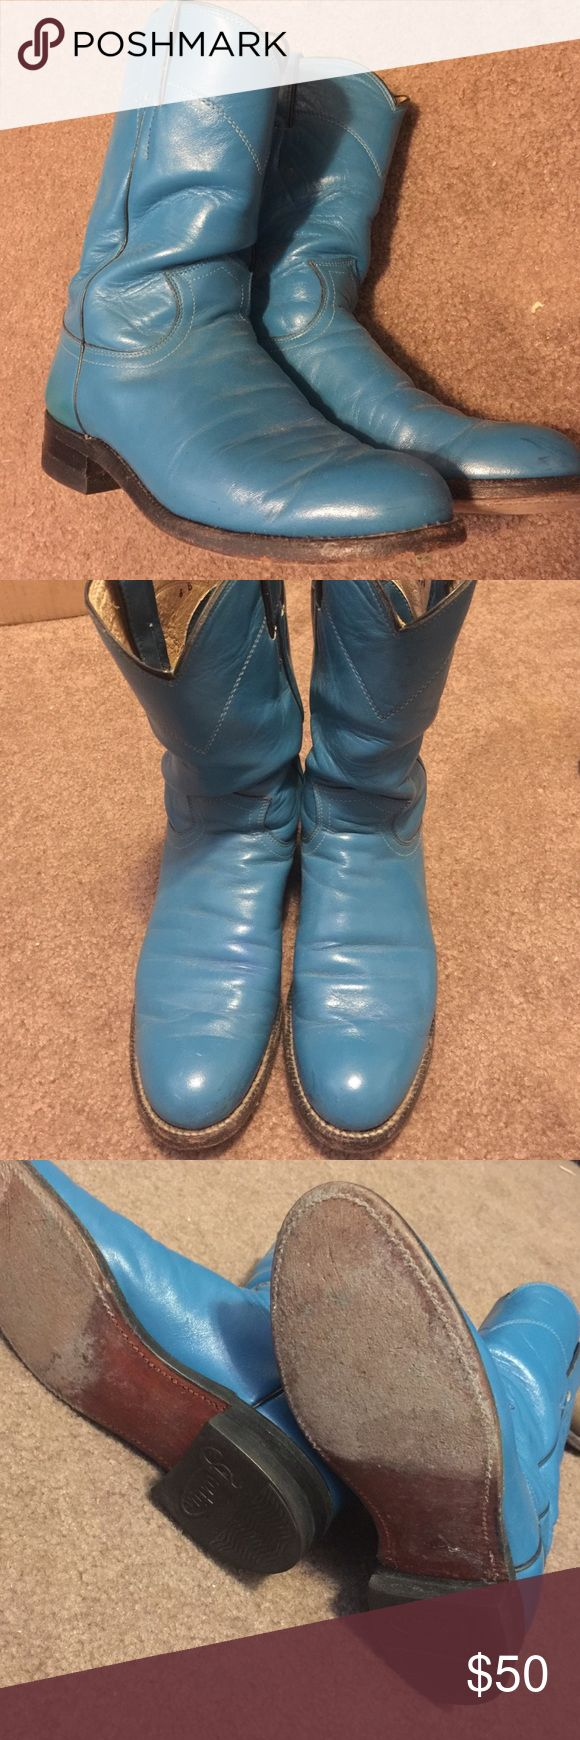 Turquoise Justin Roper Boots Turquoise Justin Roper Boots.  Great condition.  A few scuffs.  Soles are in good condition. Justin Boots Shoes